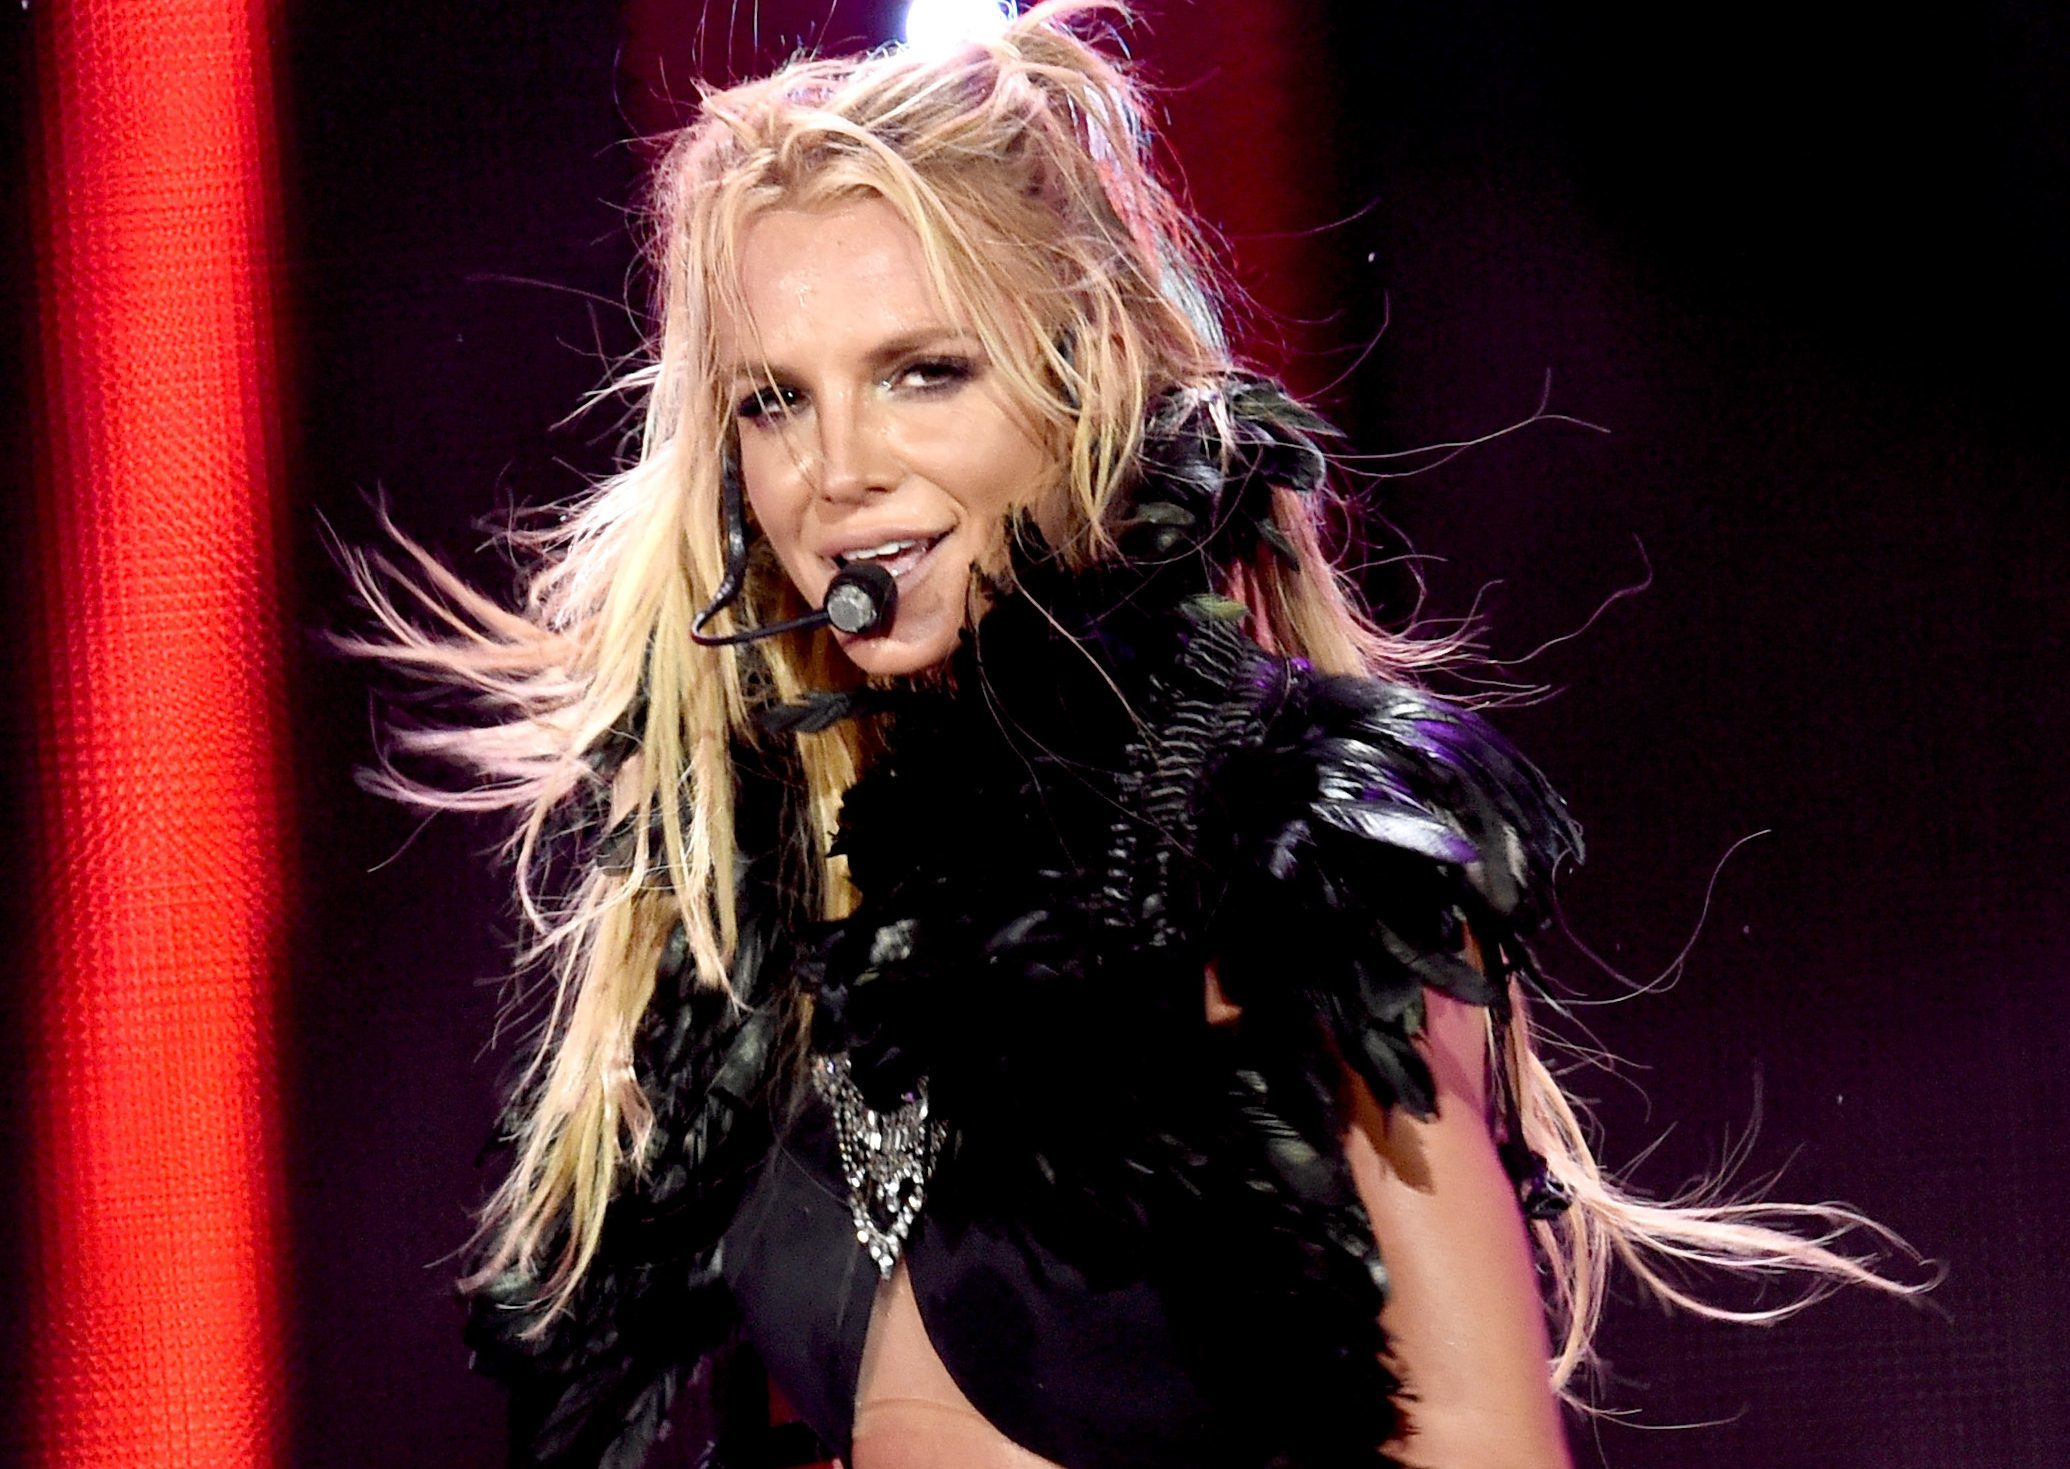 Britney Spears (Photo by Kevin Winter/Getty Images)